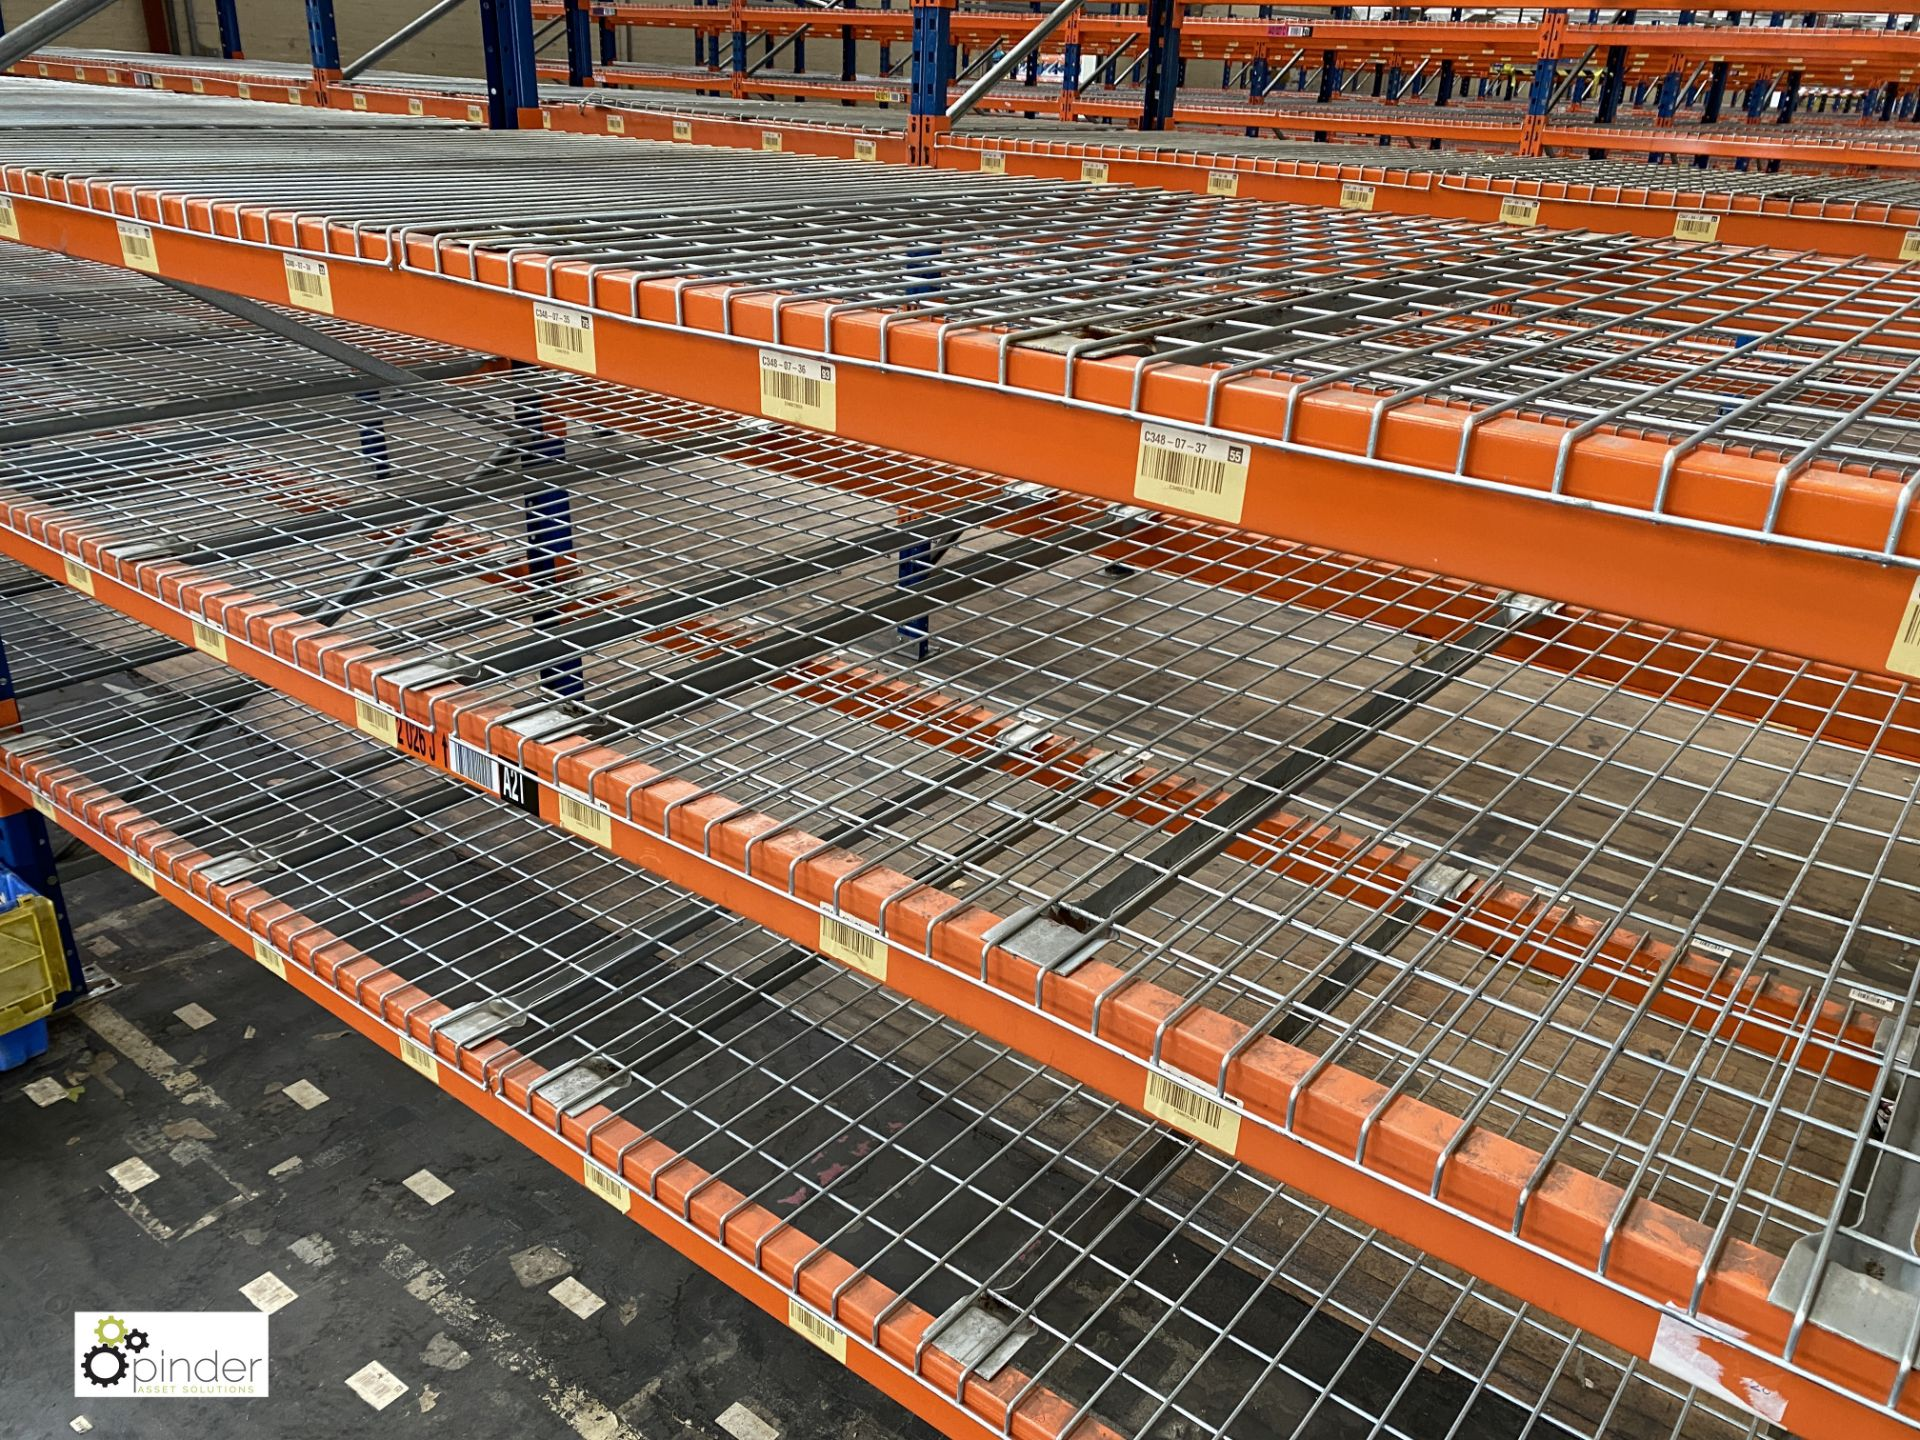 4 bays PSS 2K85 16 boltless Stock Racking, comprising 5 uprights 2400mm x 1200mm, 32 beams 2700mm, - Image 3 of 4